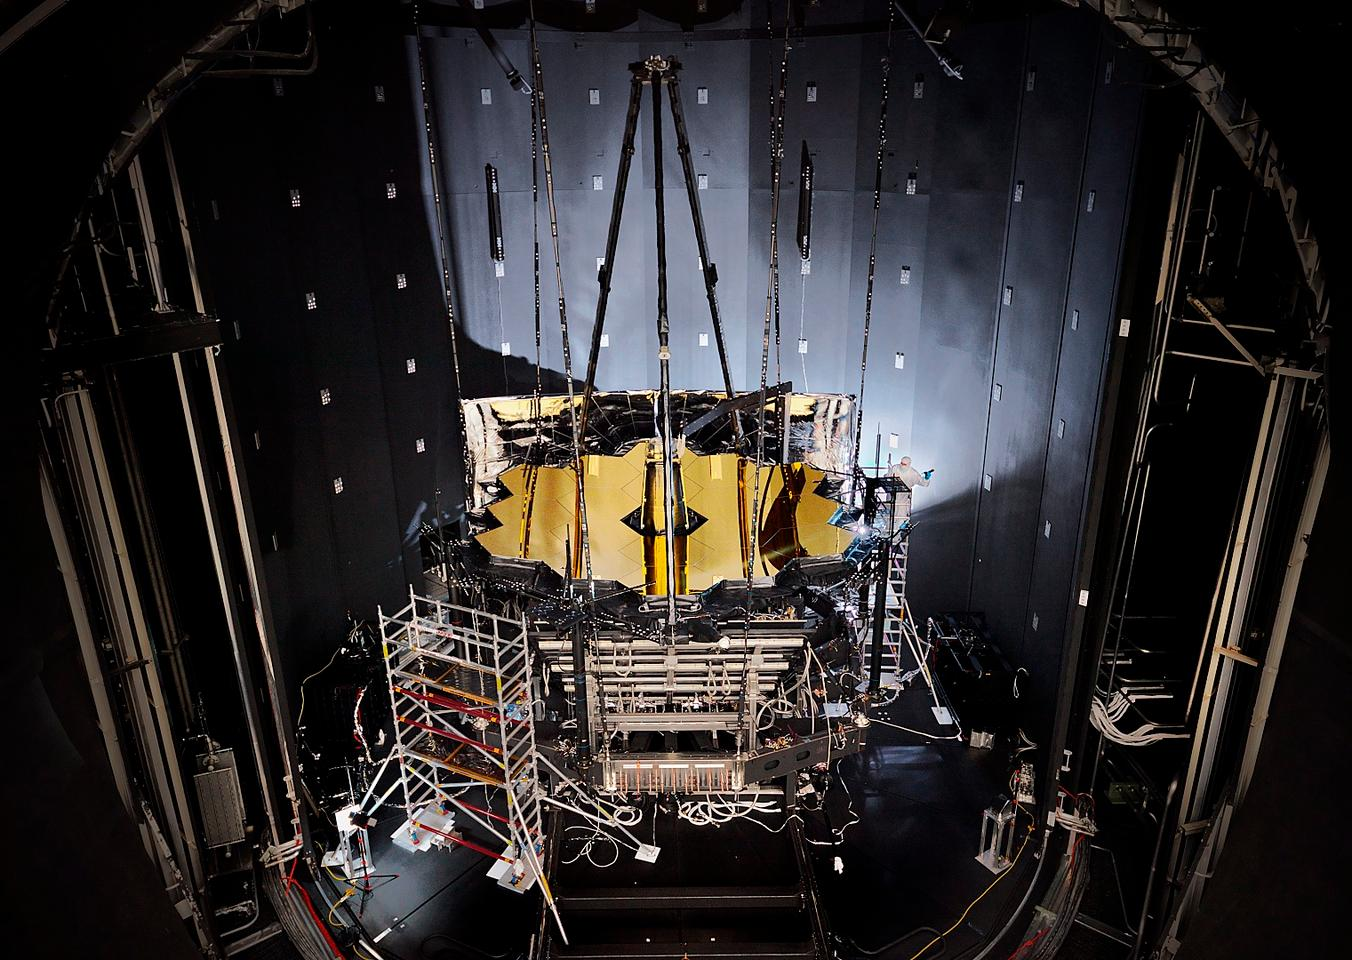 Keeping the James Webb Space Telescope cool in space is integral to the mission's success